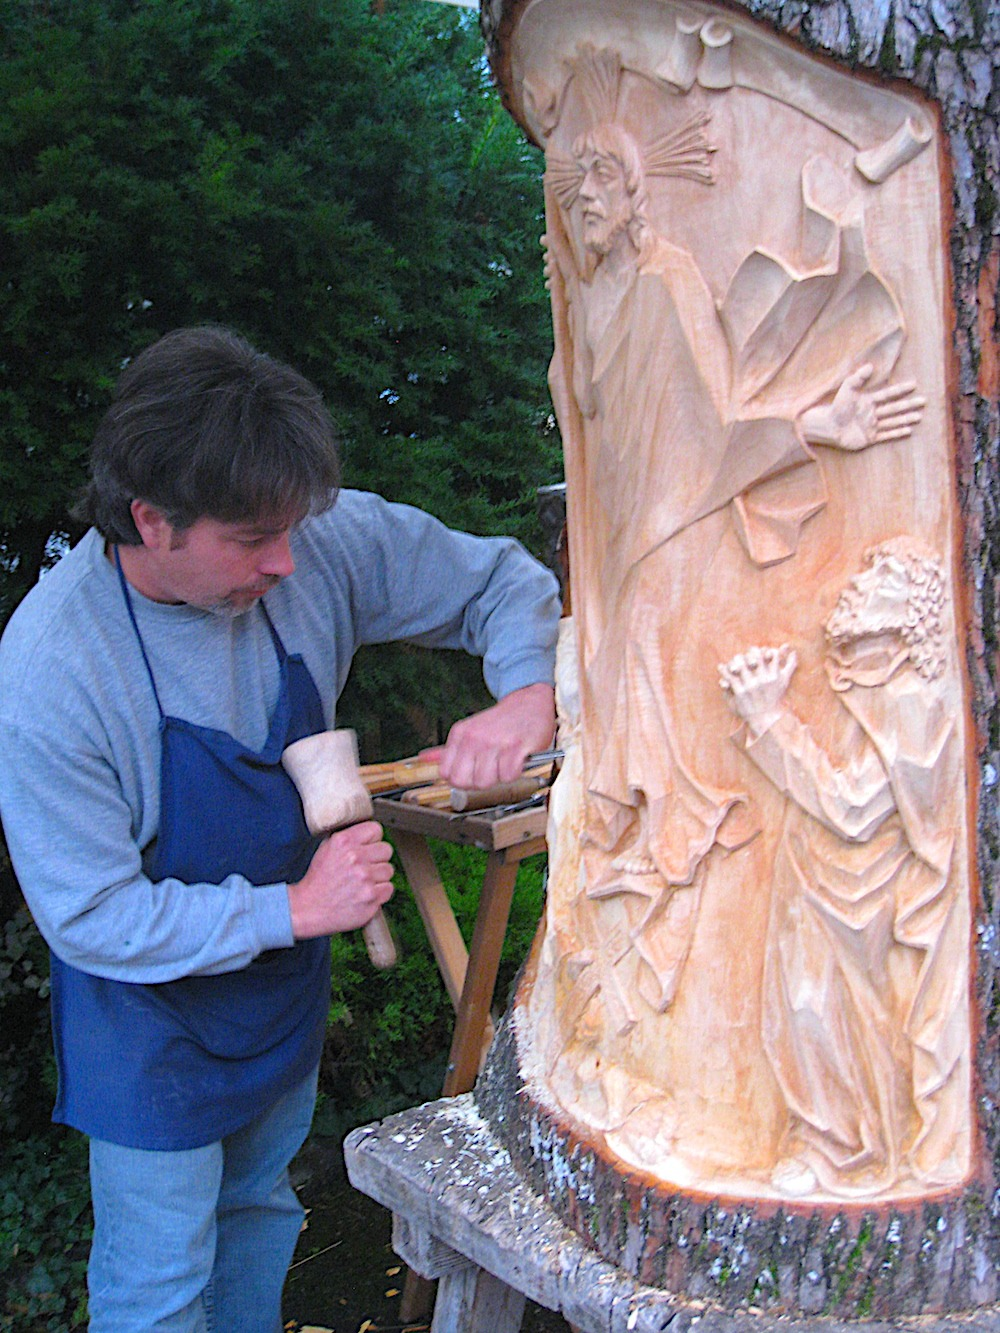 Wood carver in Oberammergau